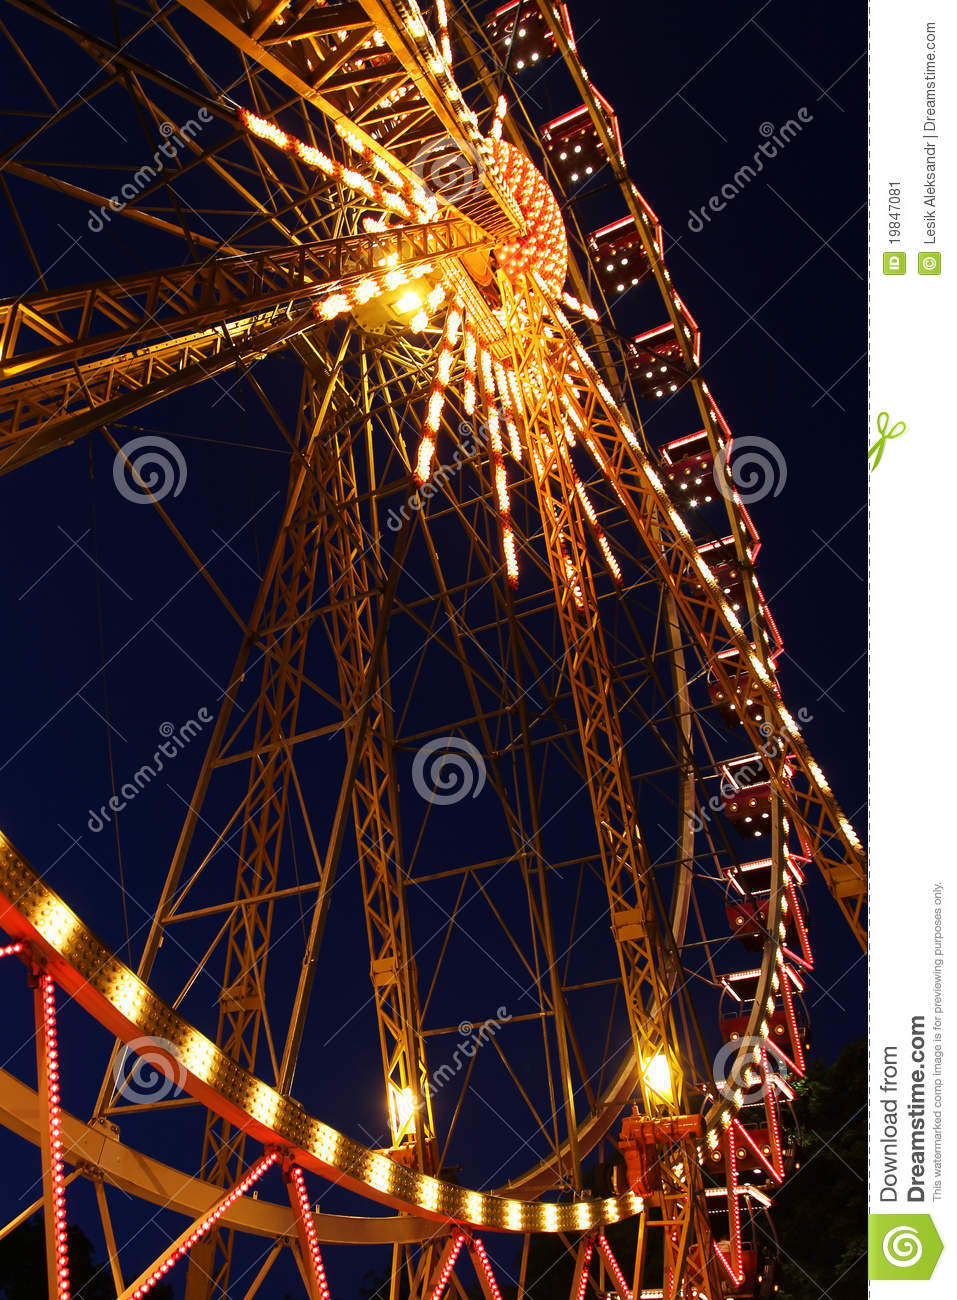 Download Ferris wheel at night stock image. Image of funfair, height - 19847081